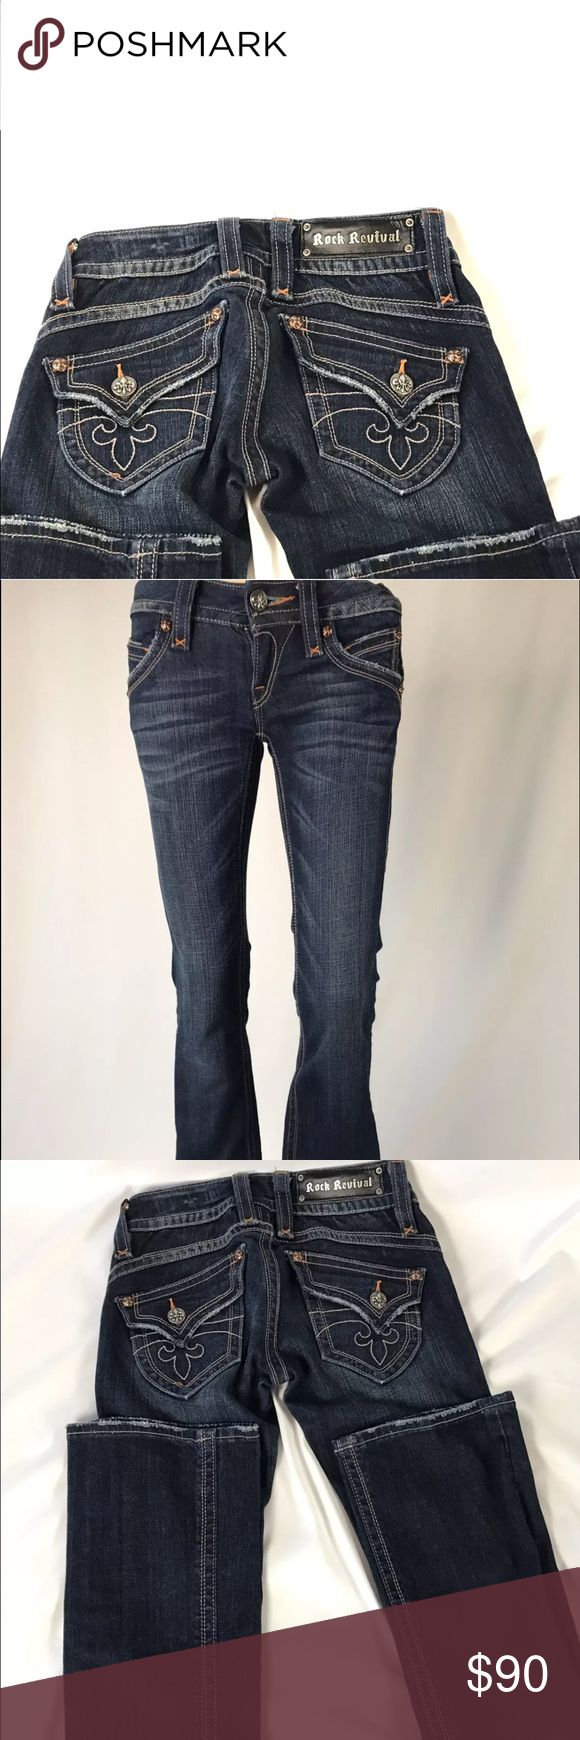 "‼️‼️‼️Must go‼️‼️‼️ Rock Revival Jeans Rock Revival Gwen Boot Cut Women's 25 Inseam 33"" Pre-Owned Great Condition.  Reasonable offers being accepted! Rock Revival Jeans Boot Cut"